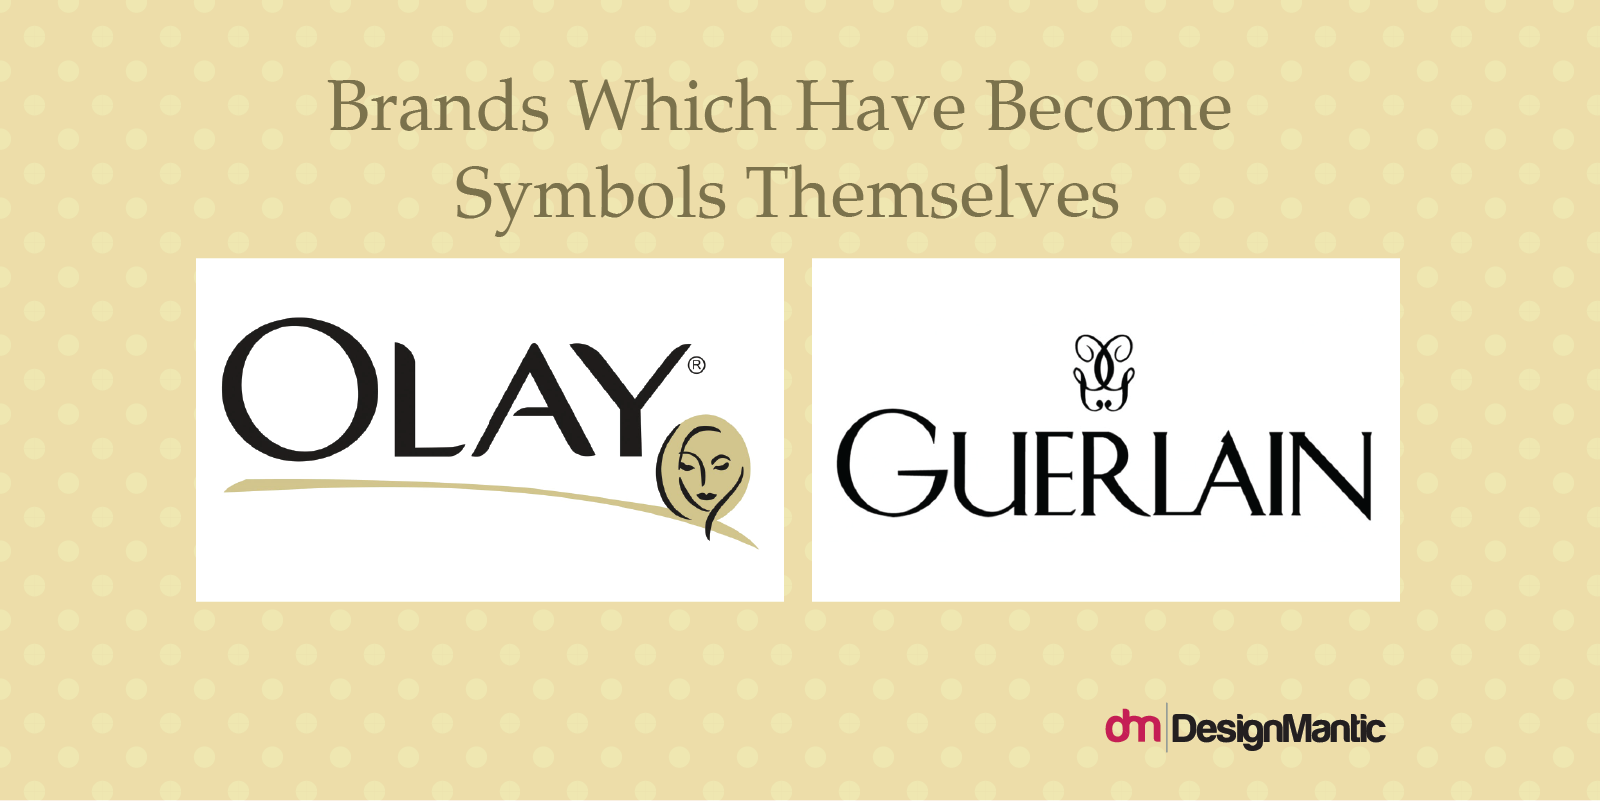 Brands Who Have Become Symbols Themselves